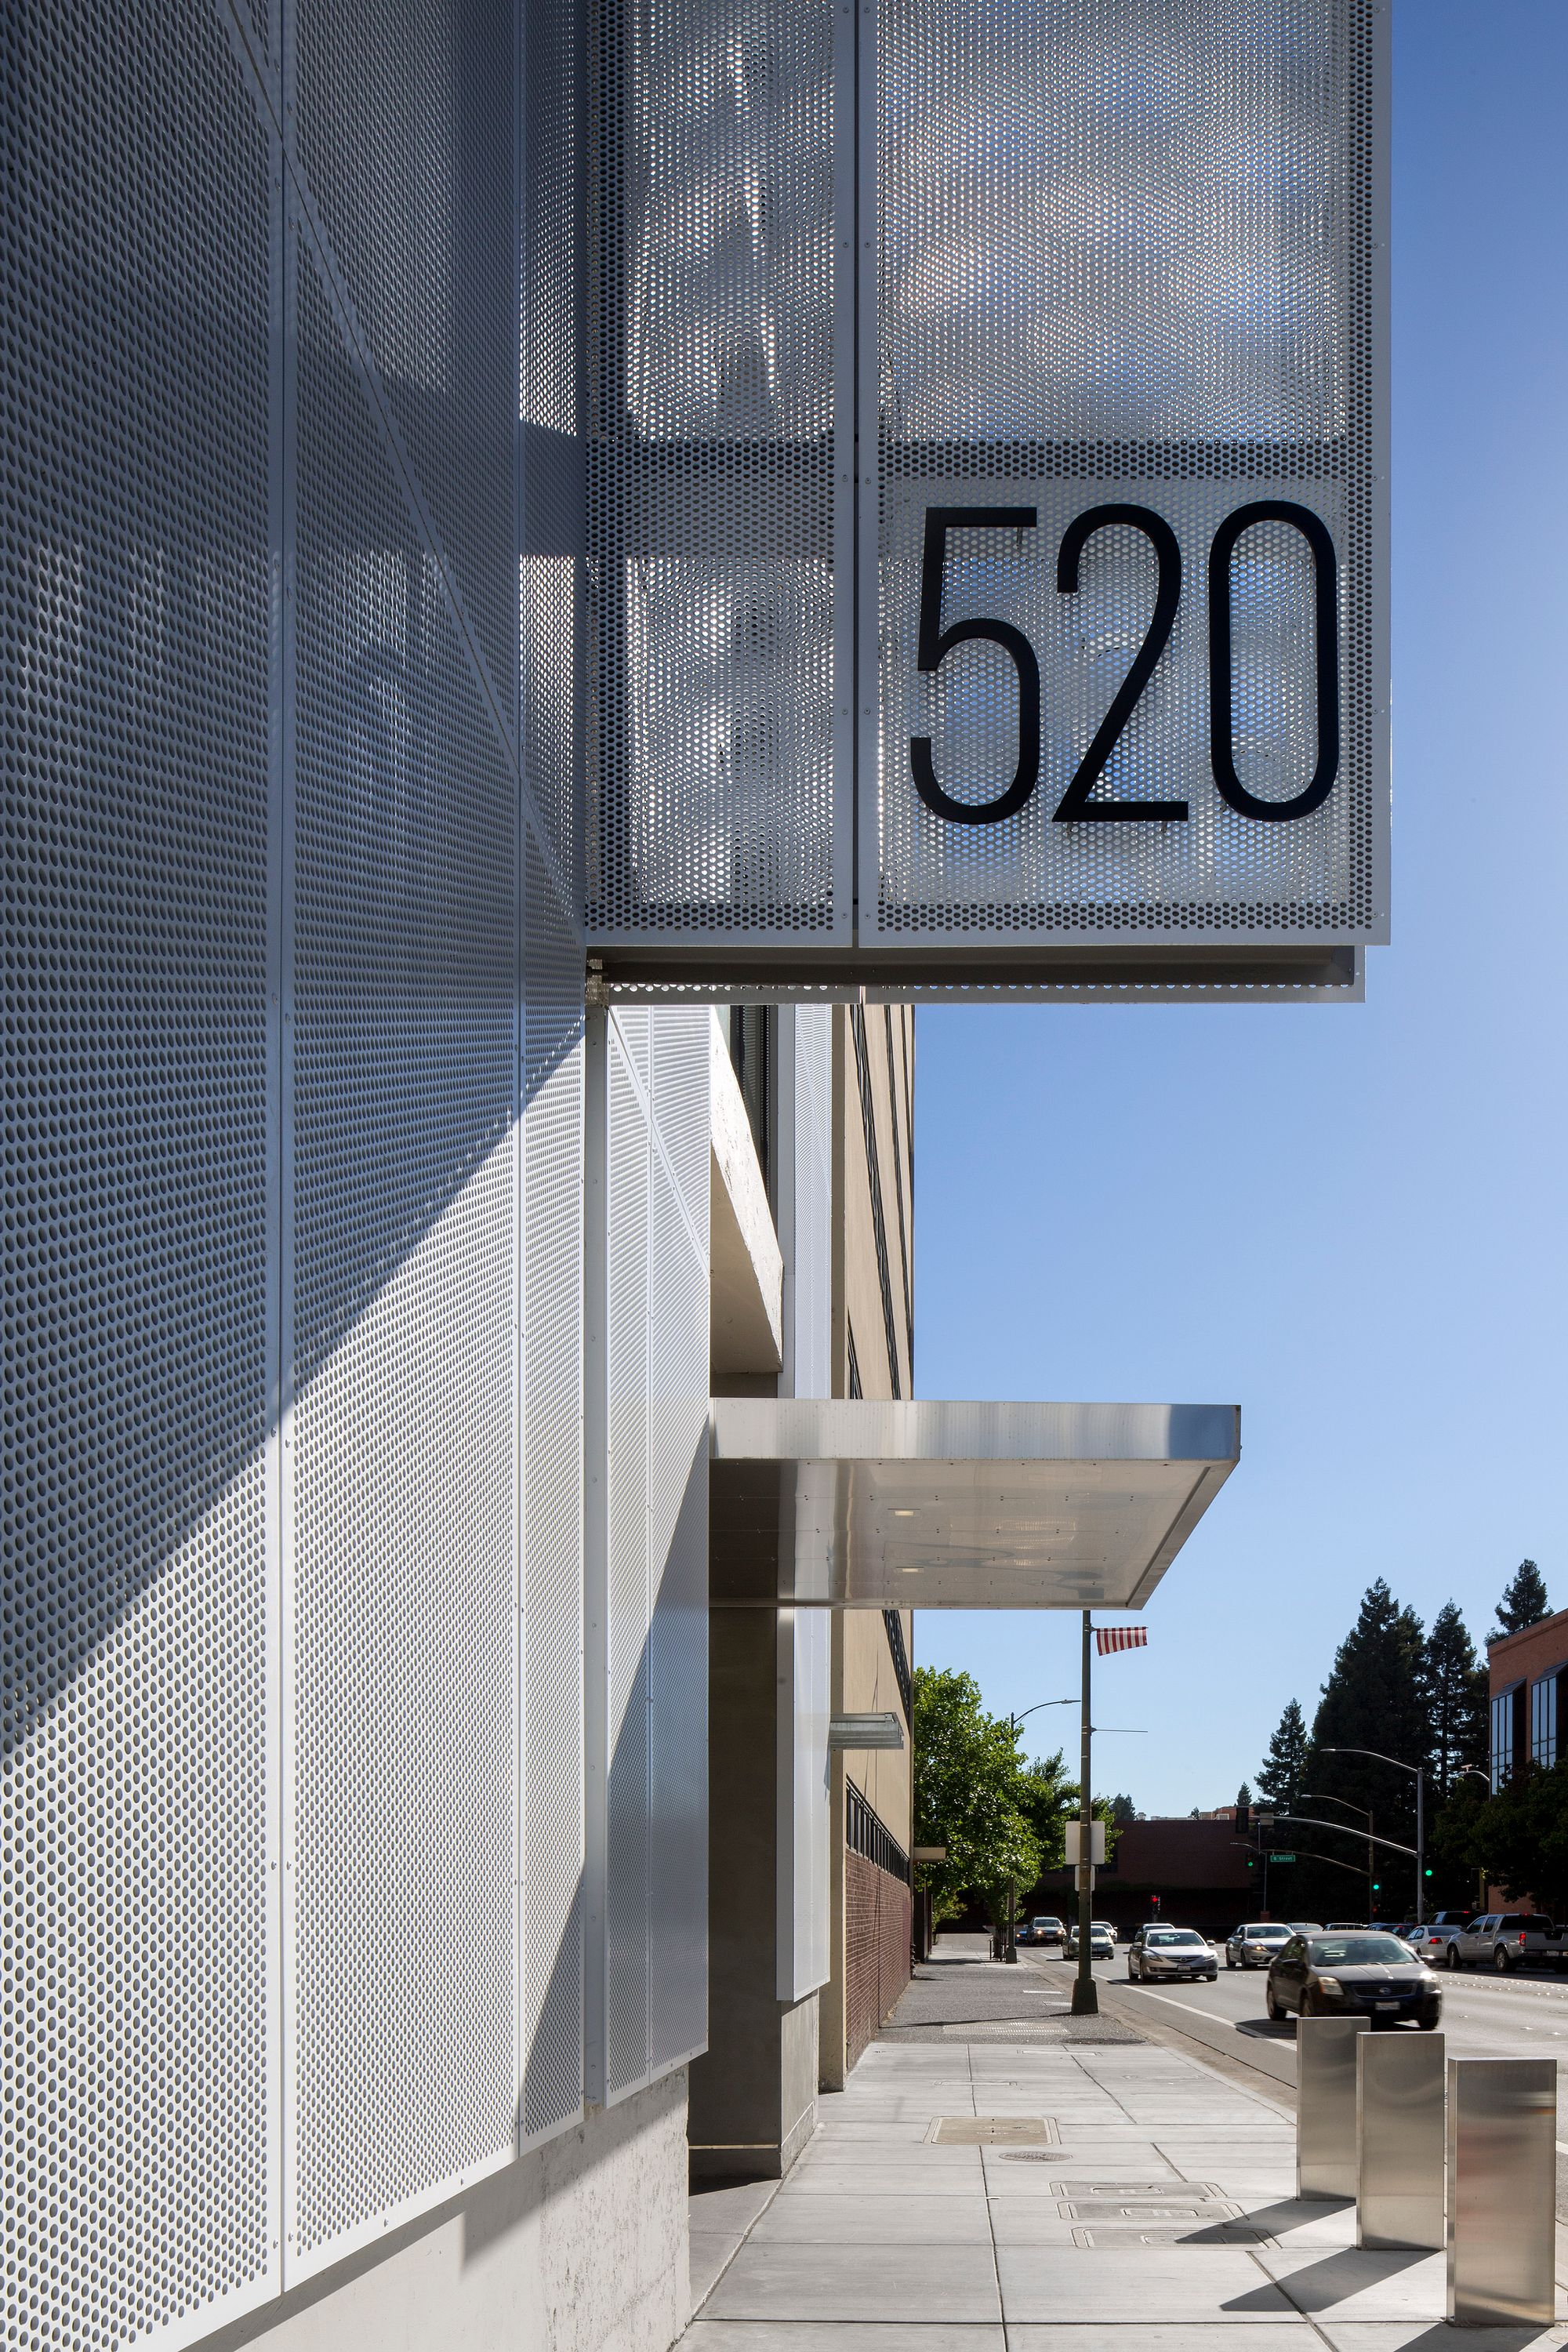 Perforated panels enhance building facade and sign